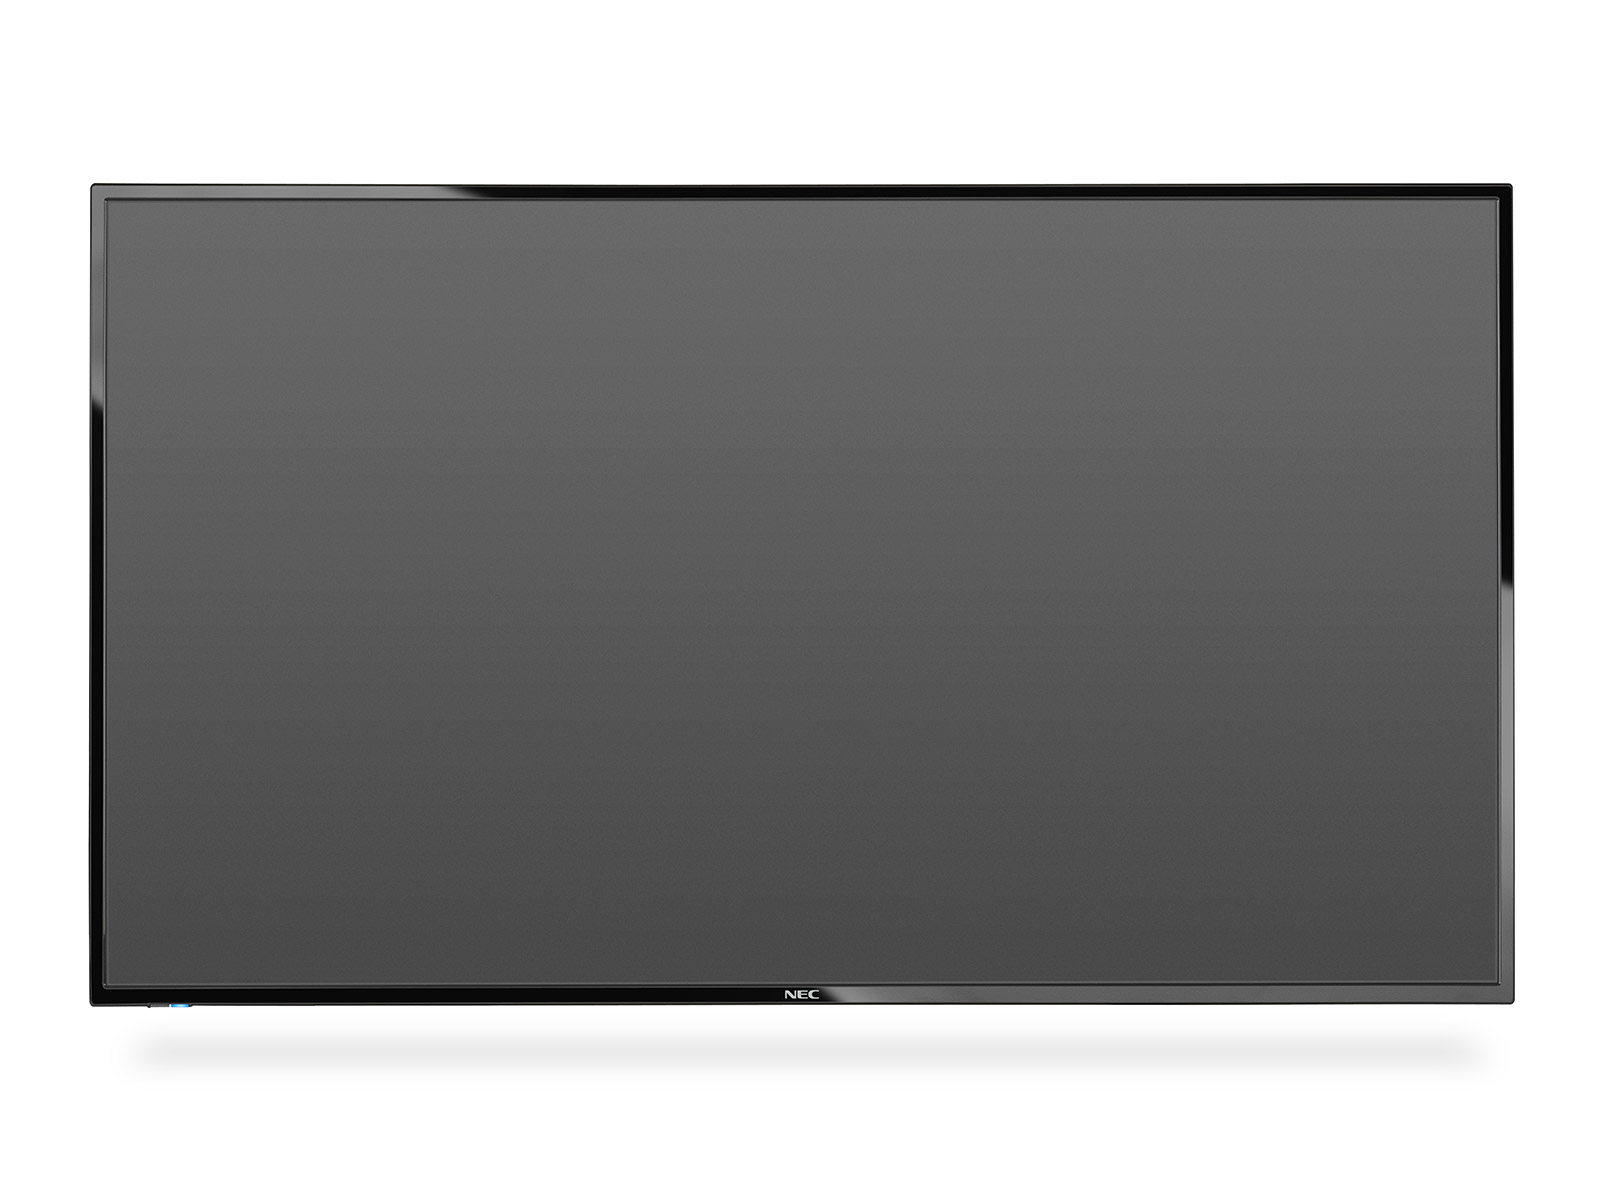 "NEC 55"" velkoformátový display E556 - 12/7, 1920x1080, 350cd, media player, bez stojanu"